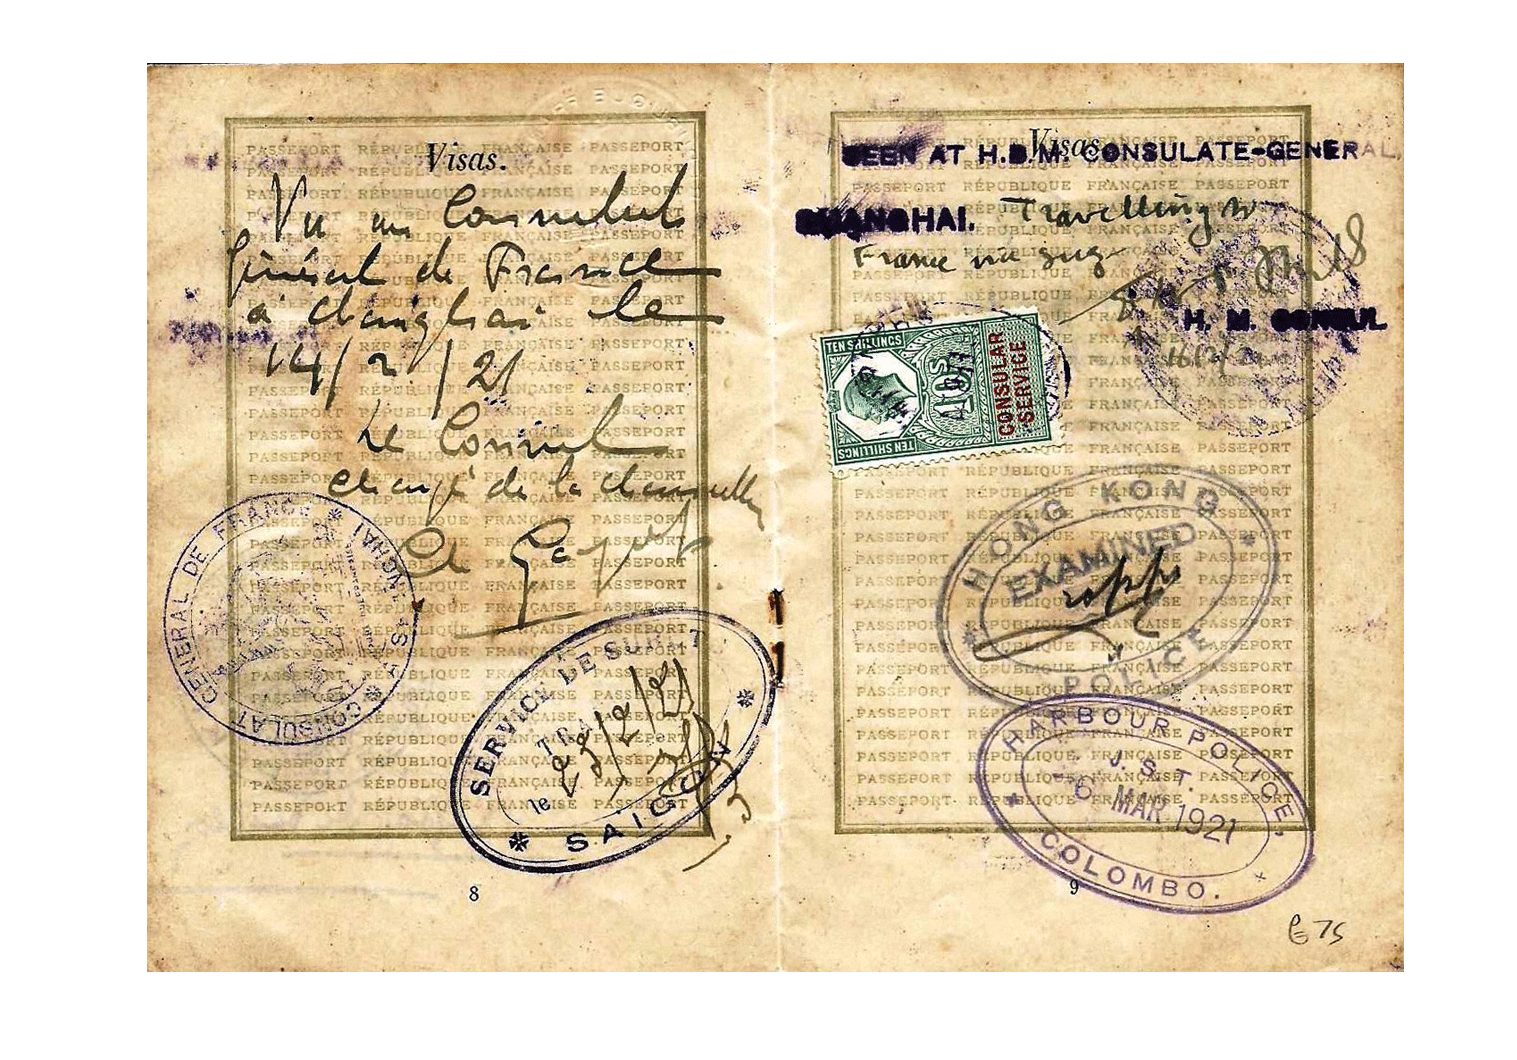 1921 Chinese old passport